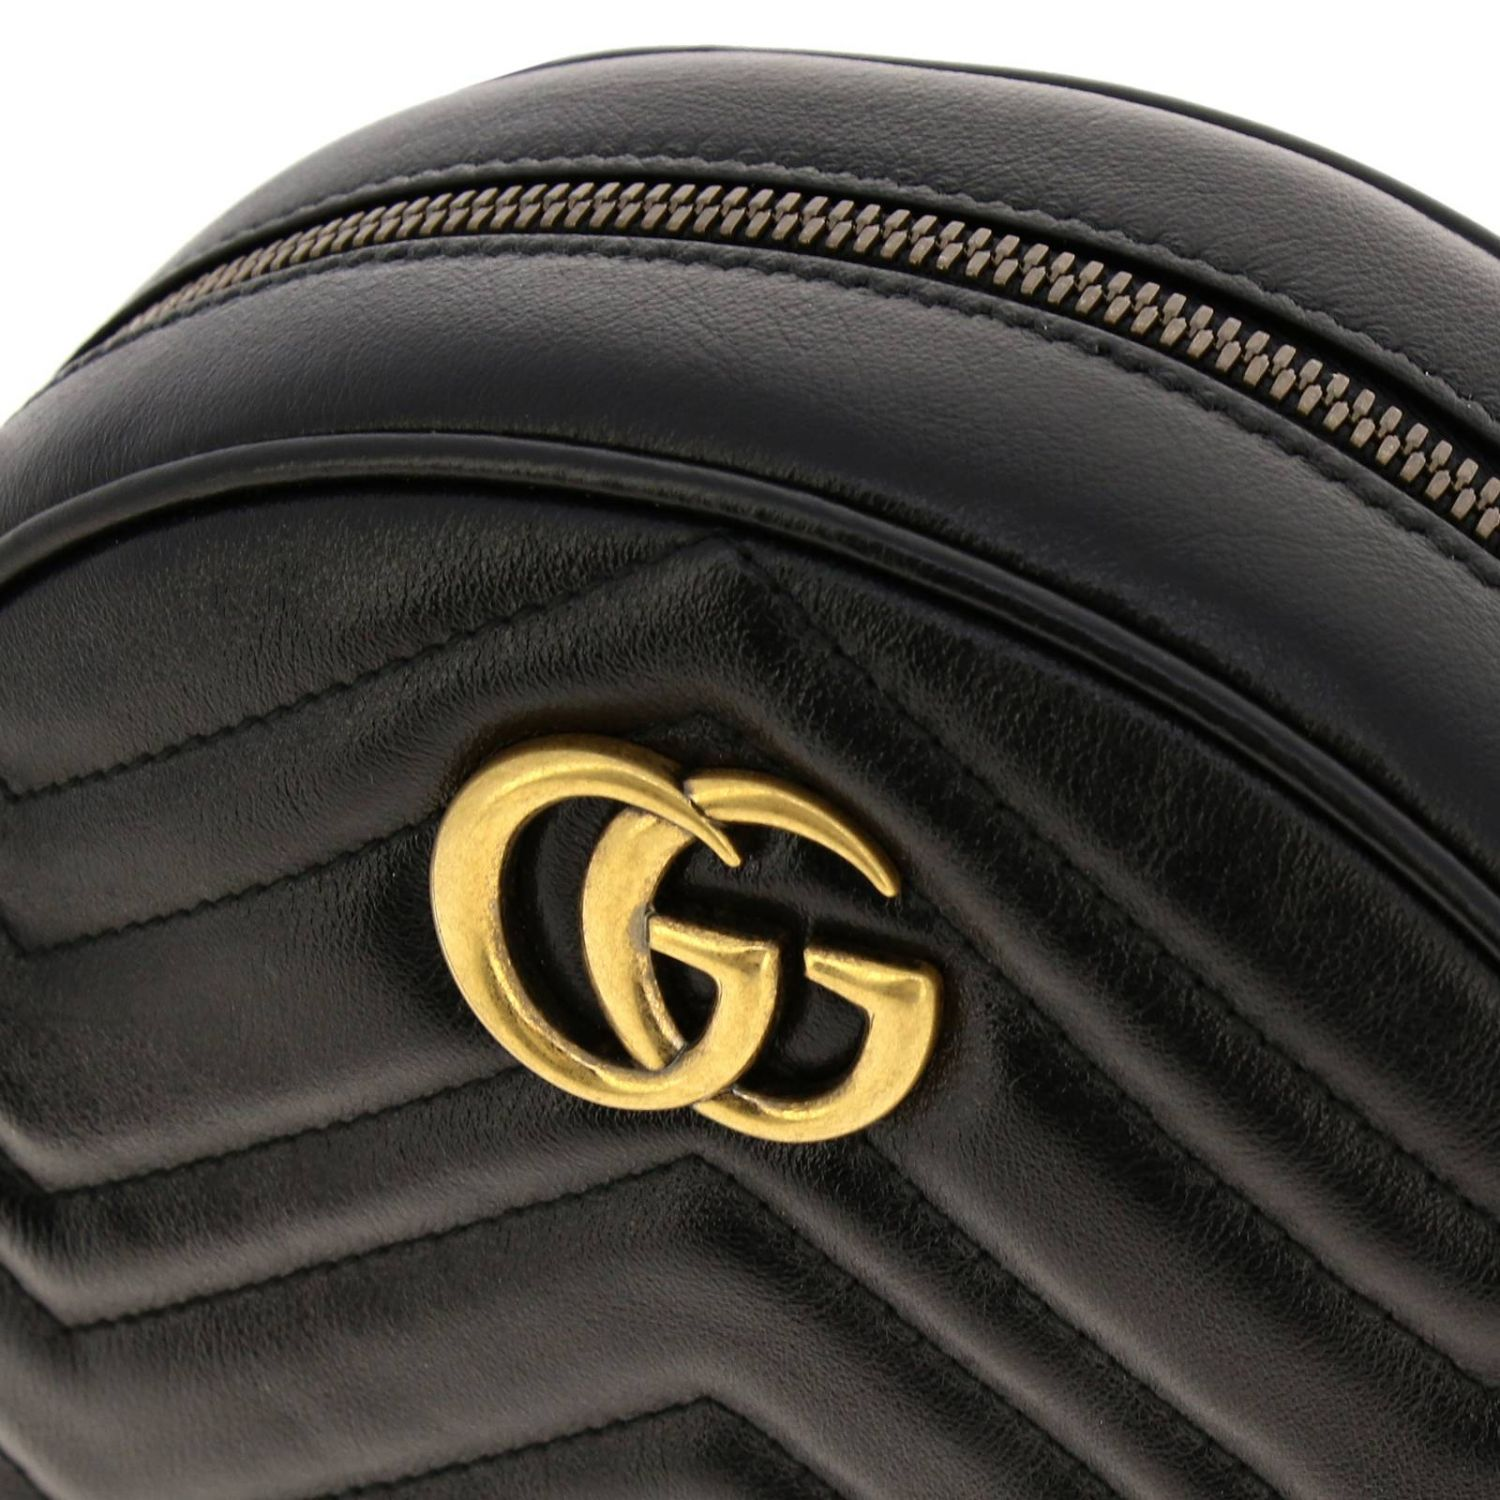 Mini bag Gucci: GG Marmont Gucci quilted leather disco bag black 4